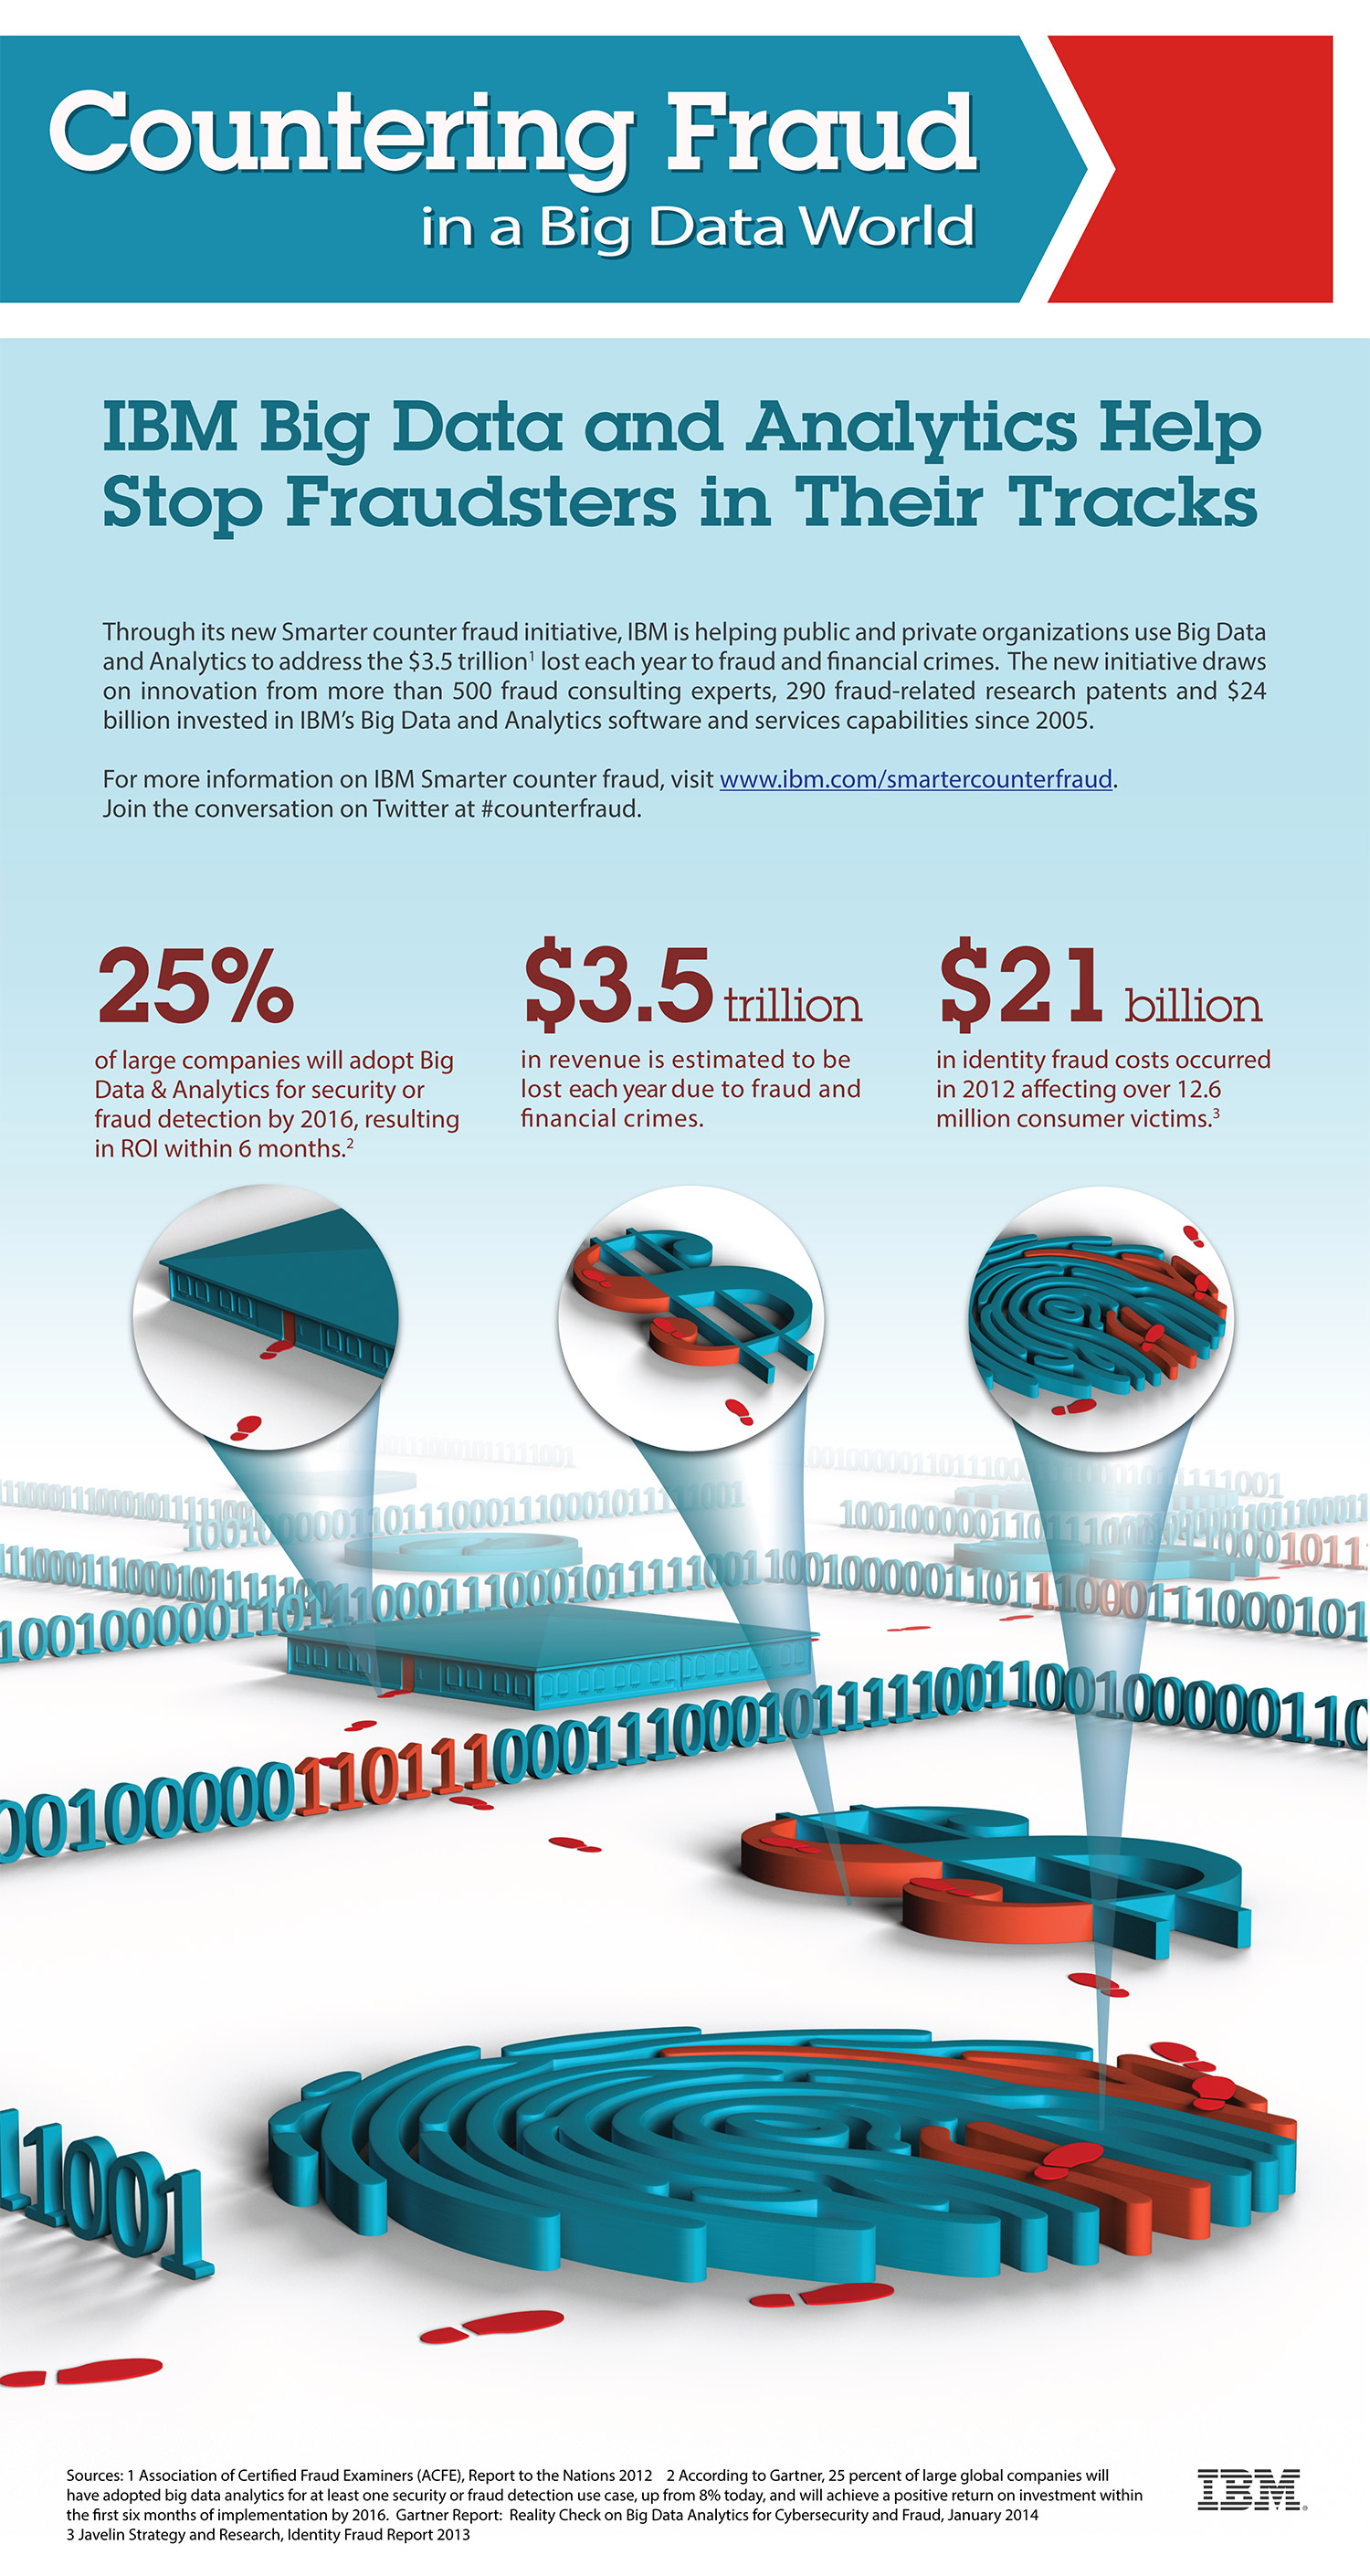 IBM Counter Fraud Infographic